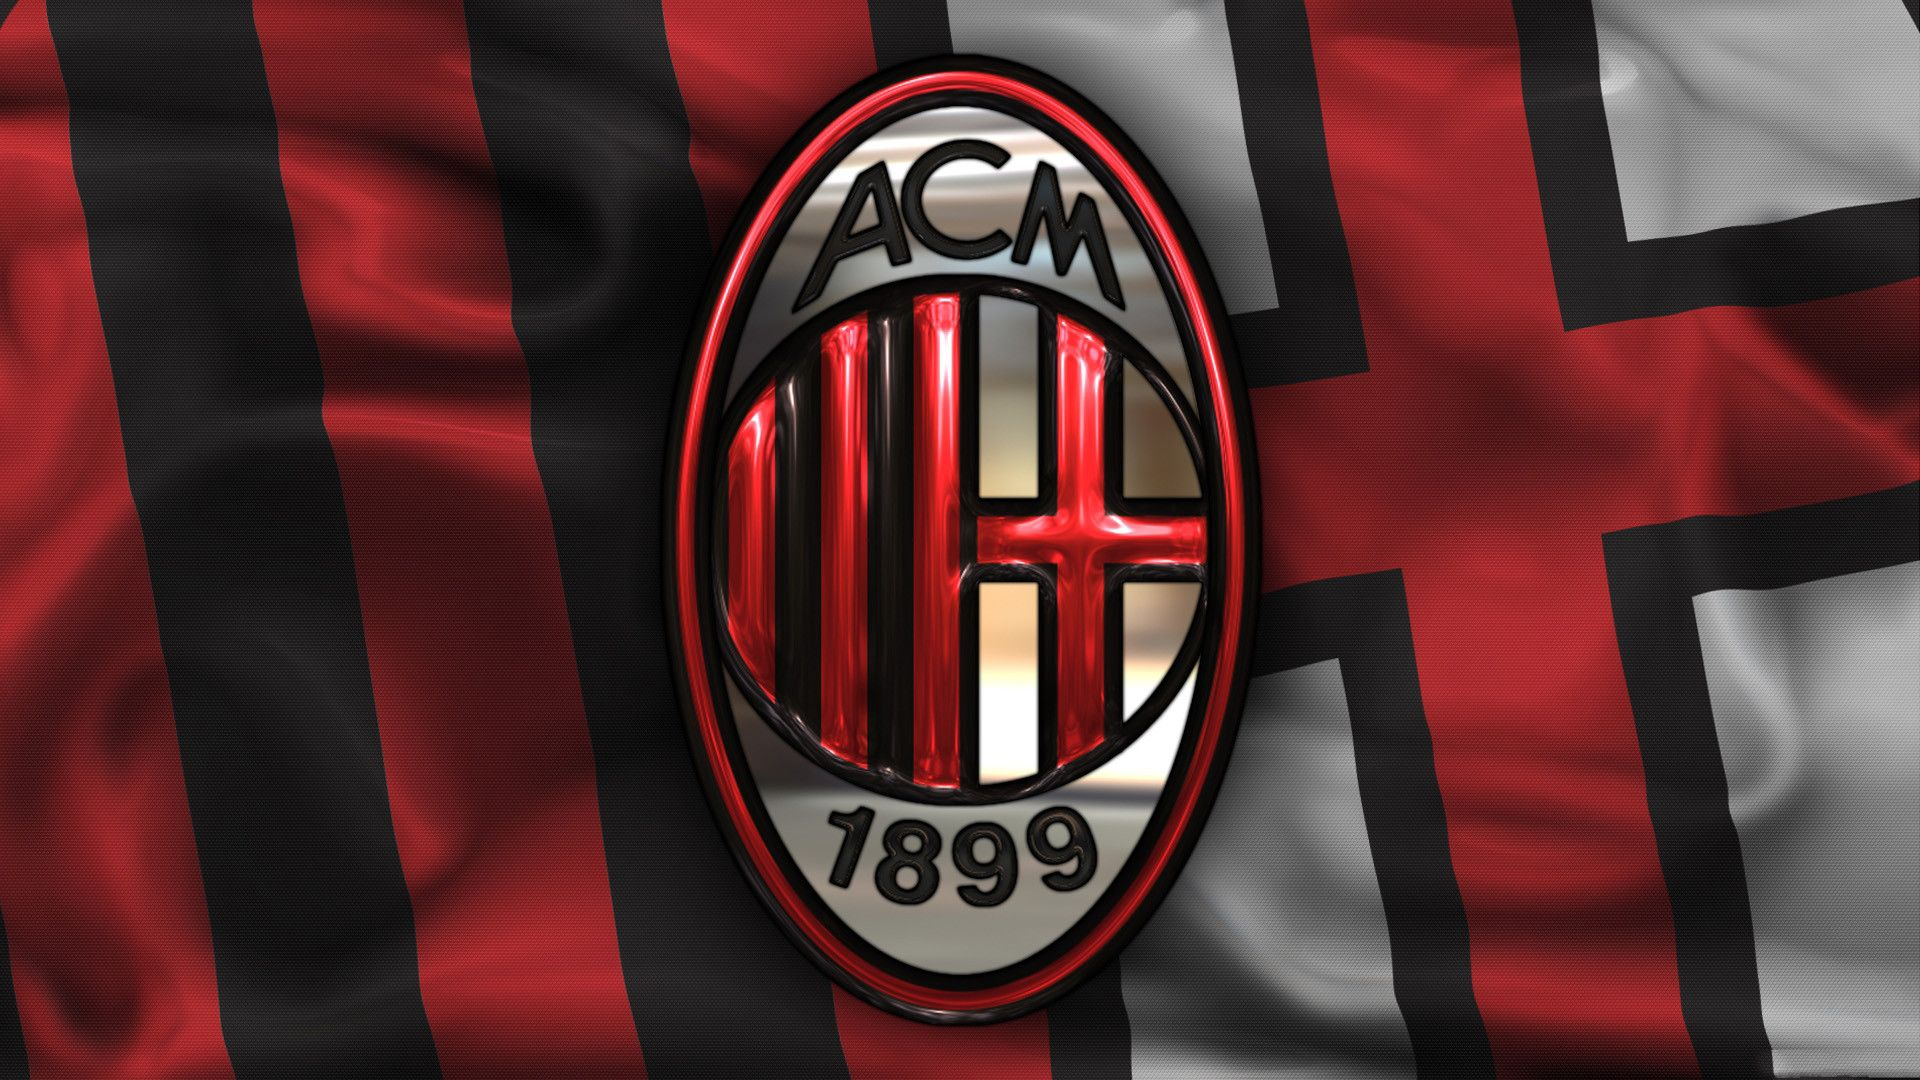 Wallpapers Ac Milan 2015 1920x1080